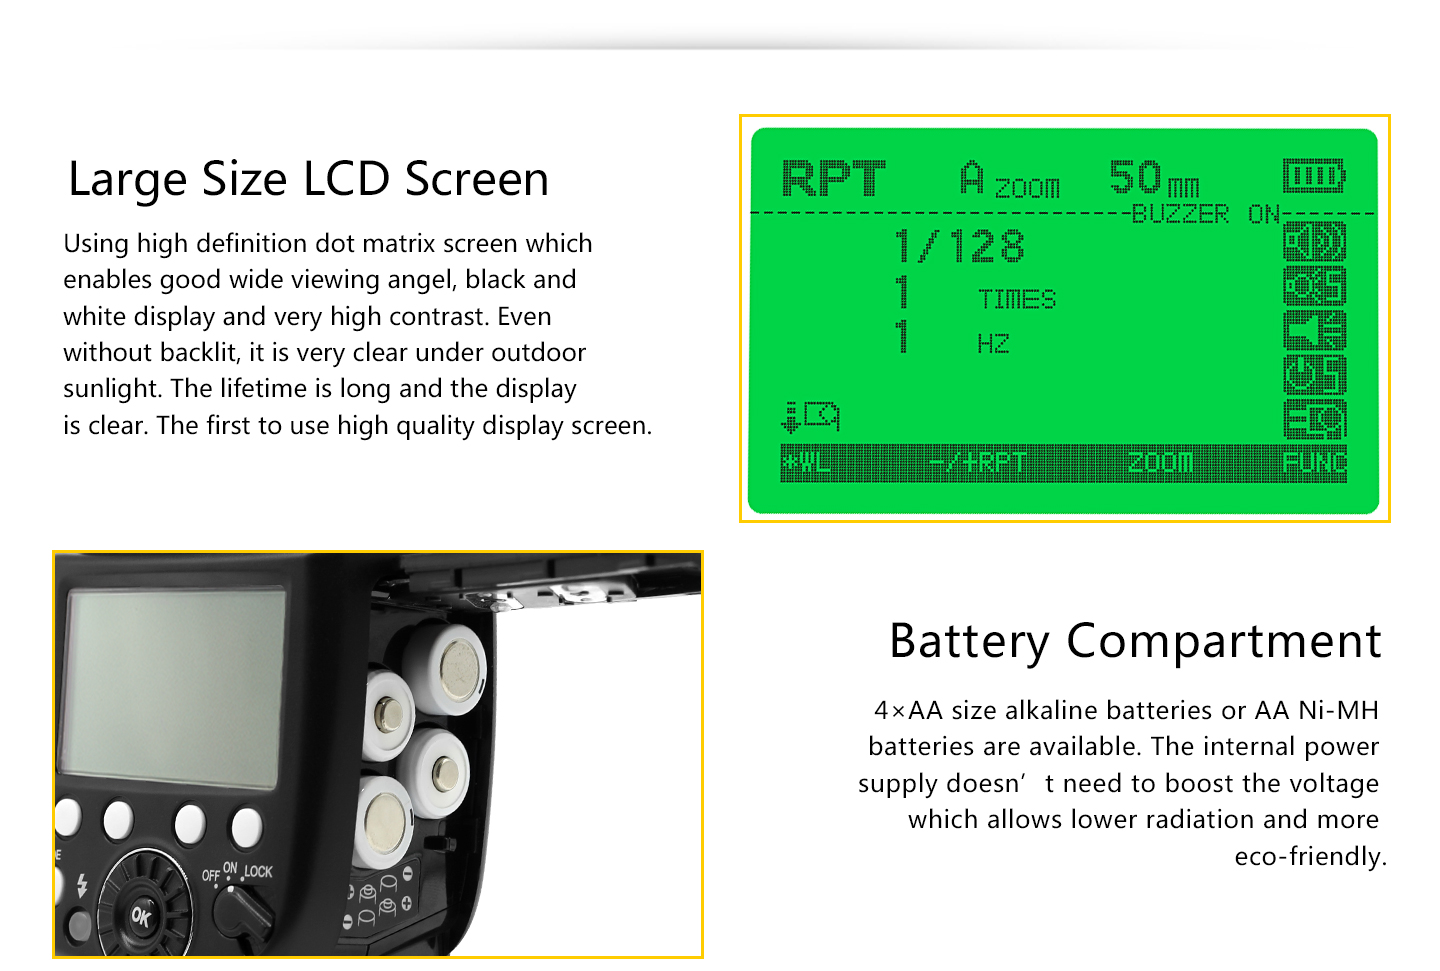 Large Size LCD Screen, Battery Compartment